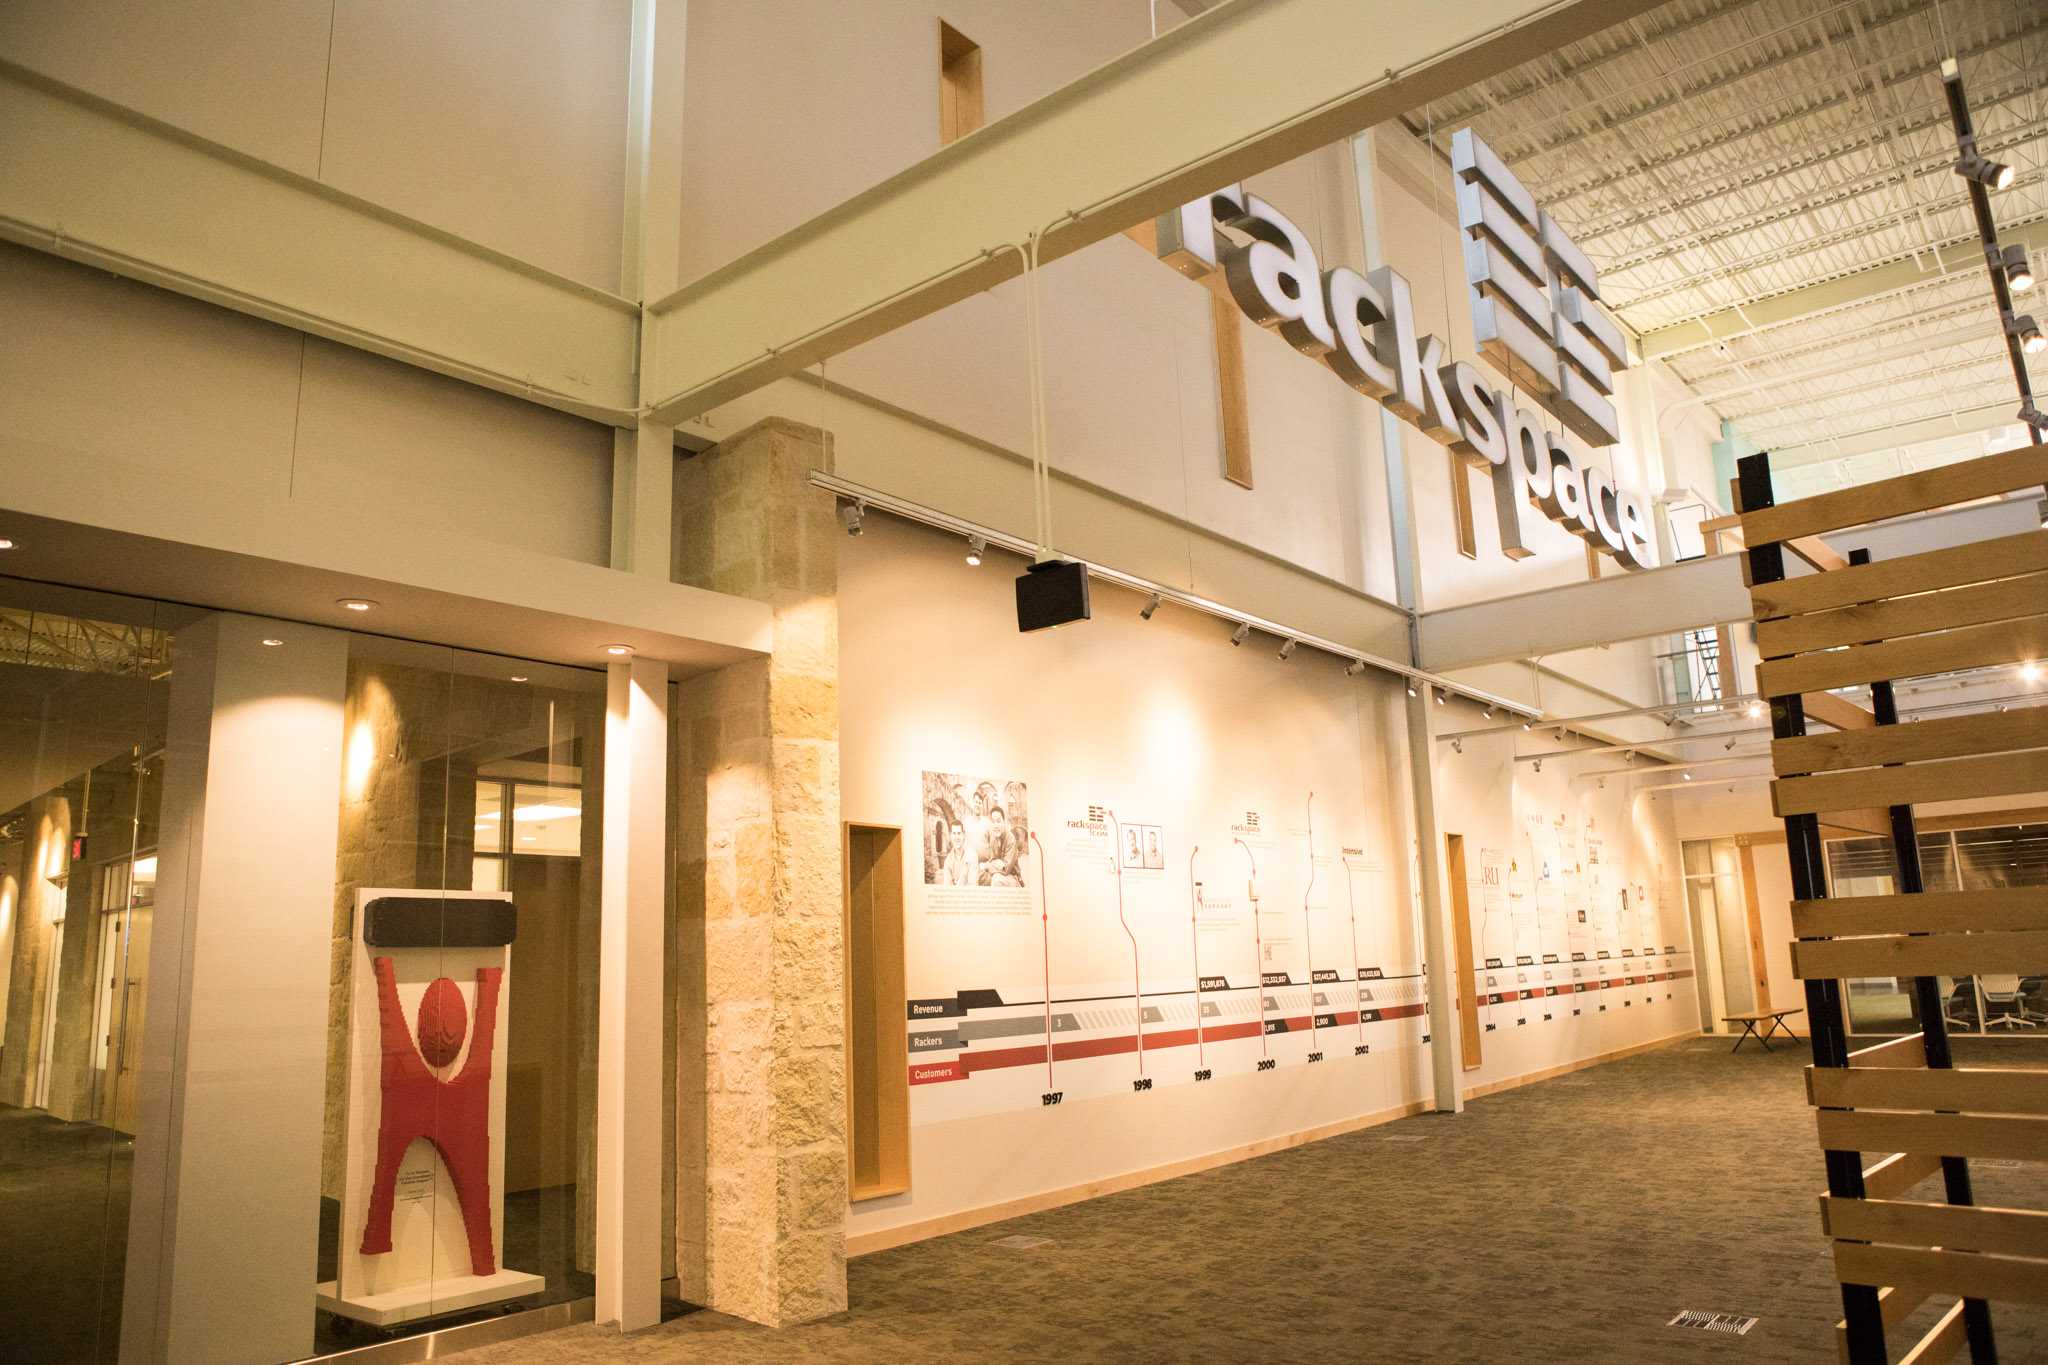 A timeline of the history of Rackspace lines the main lobby.